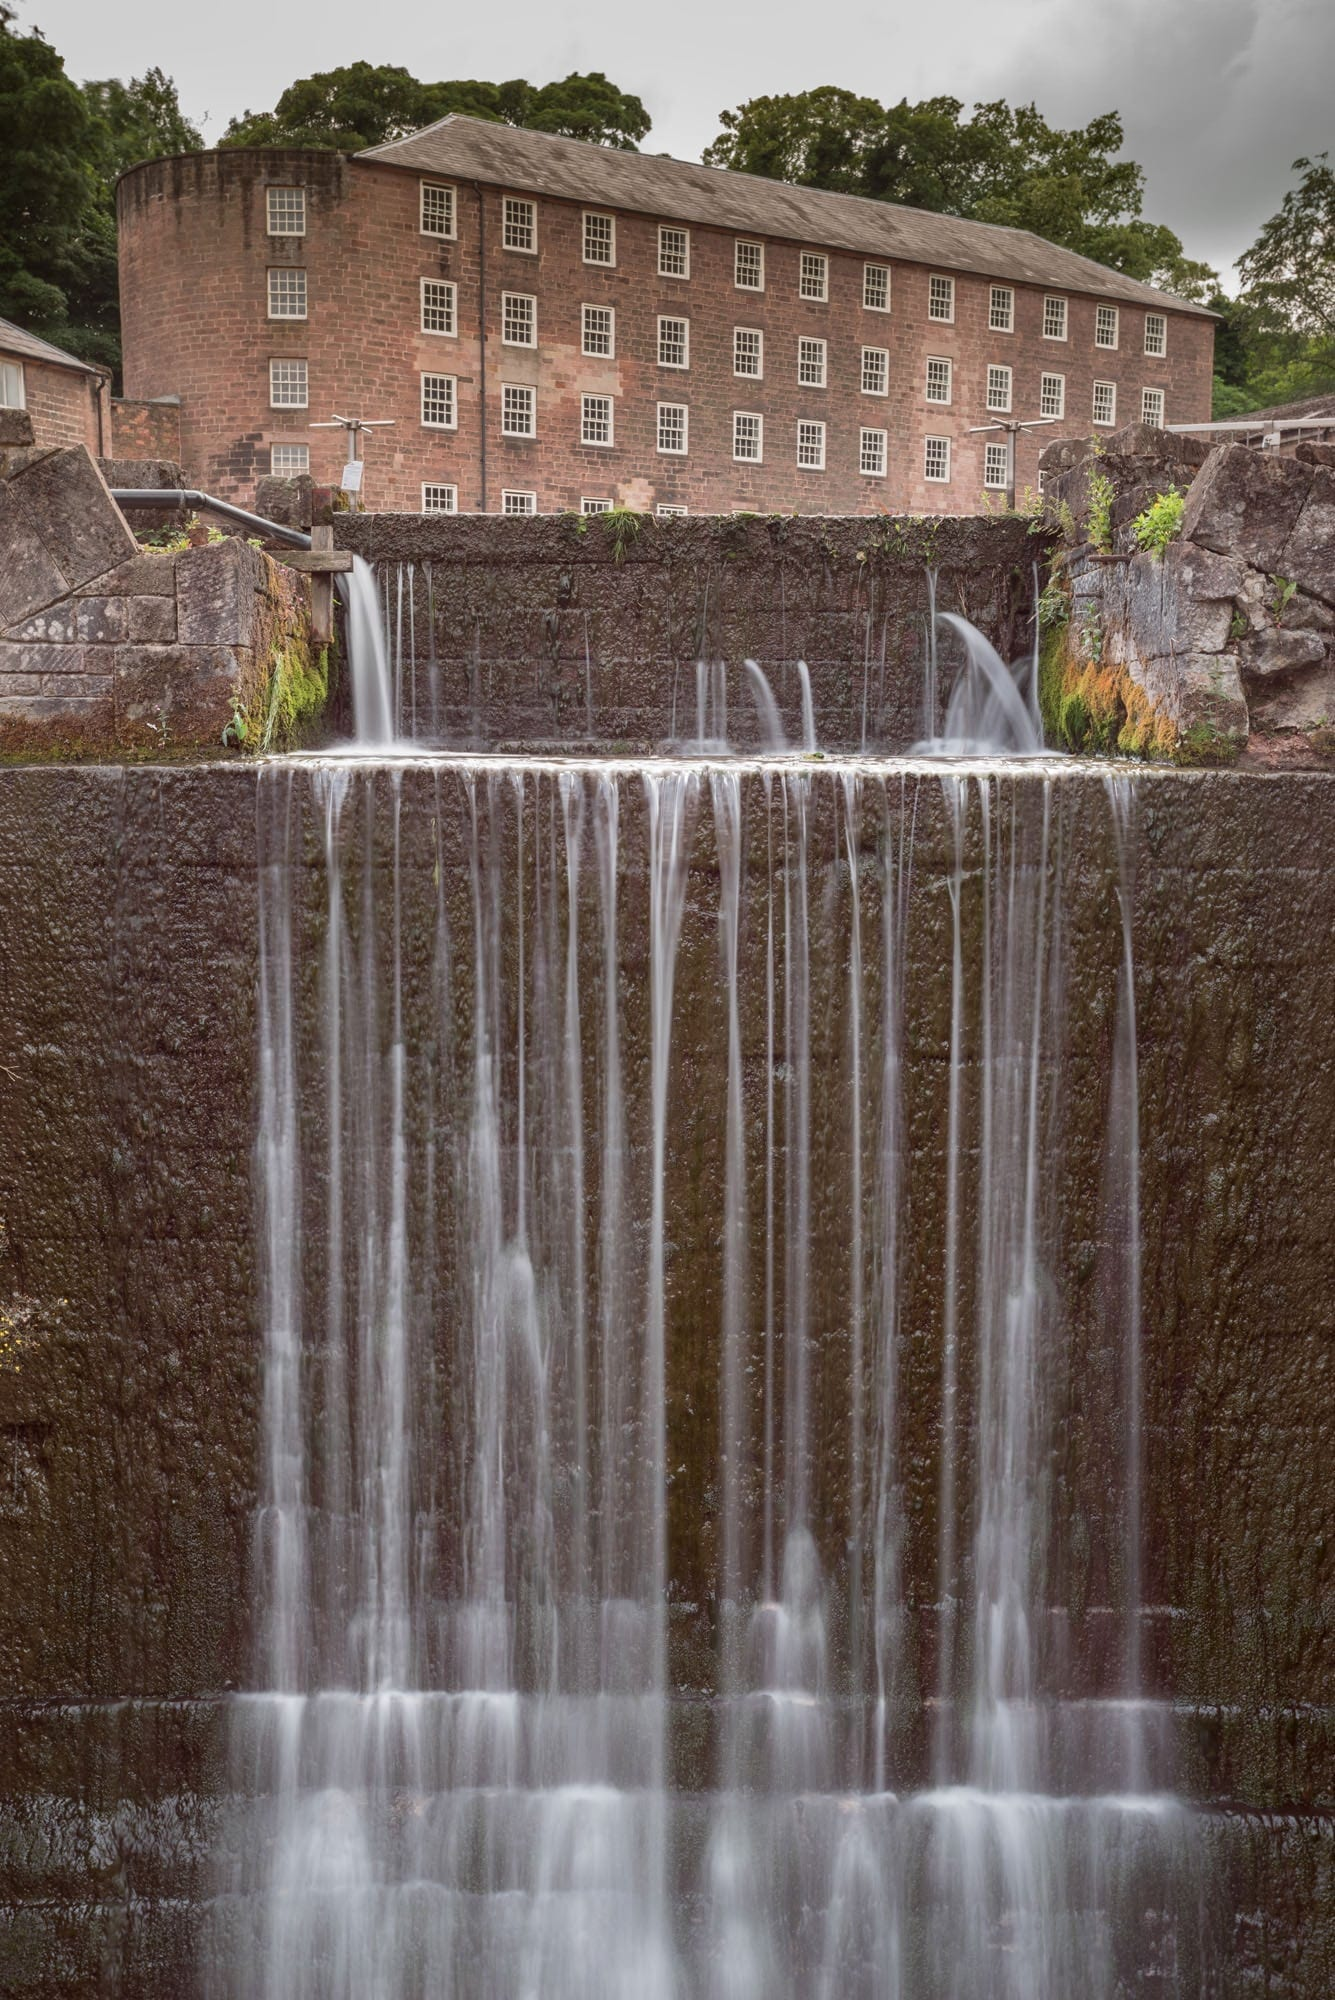 Cromford Derwent Valley Mills Waterfall - Matlock Photography Workshop